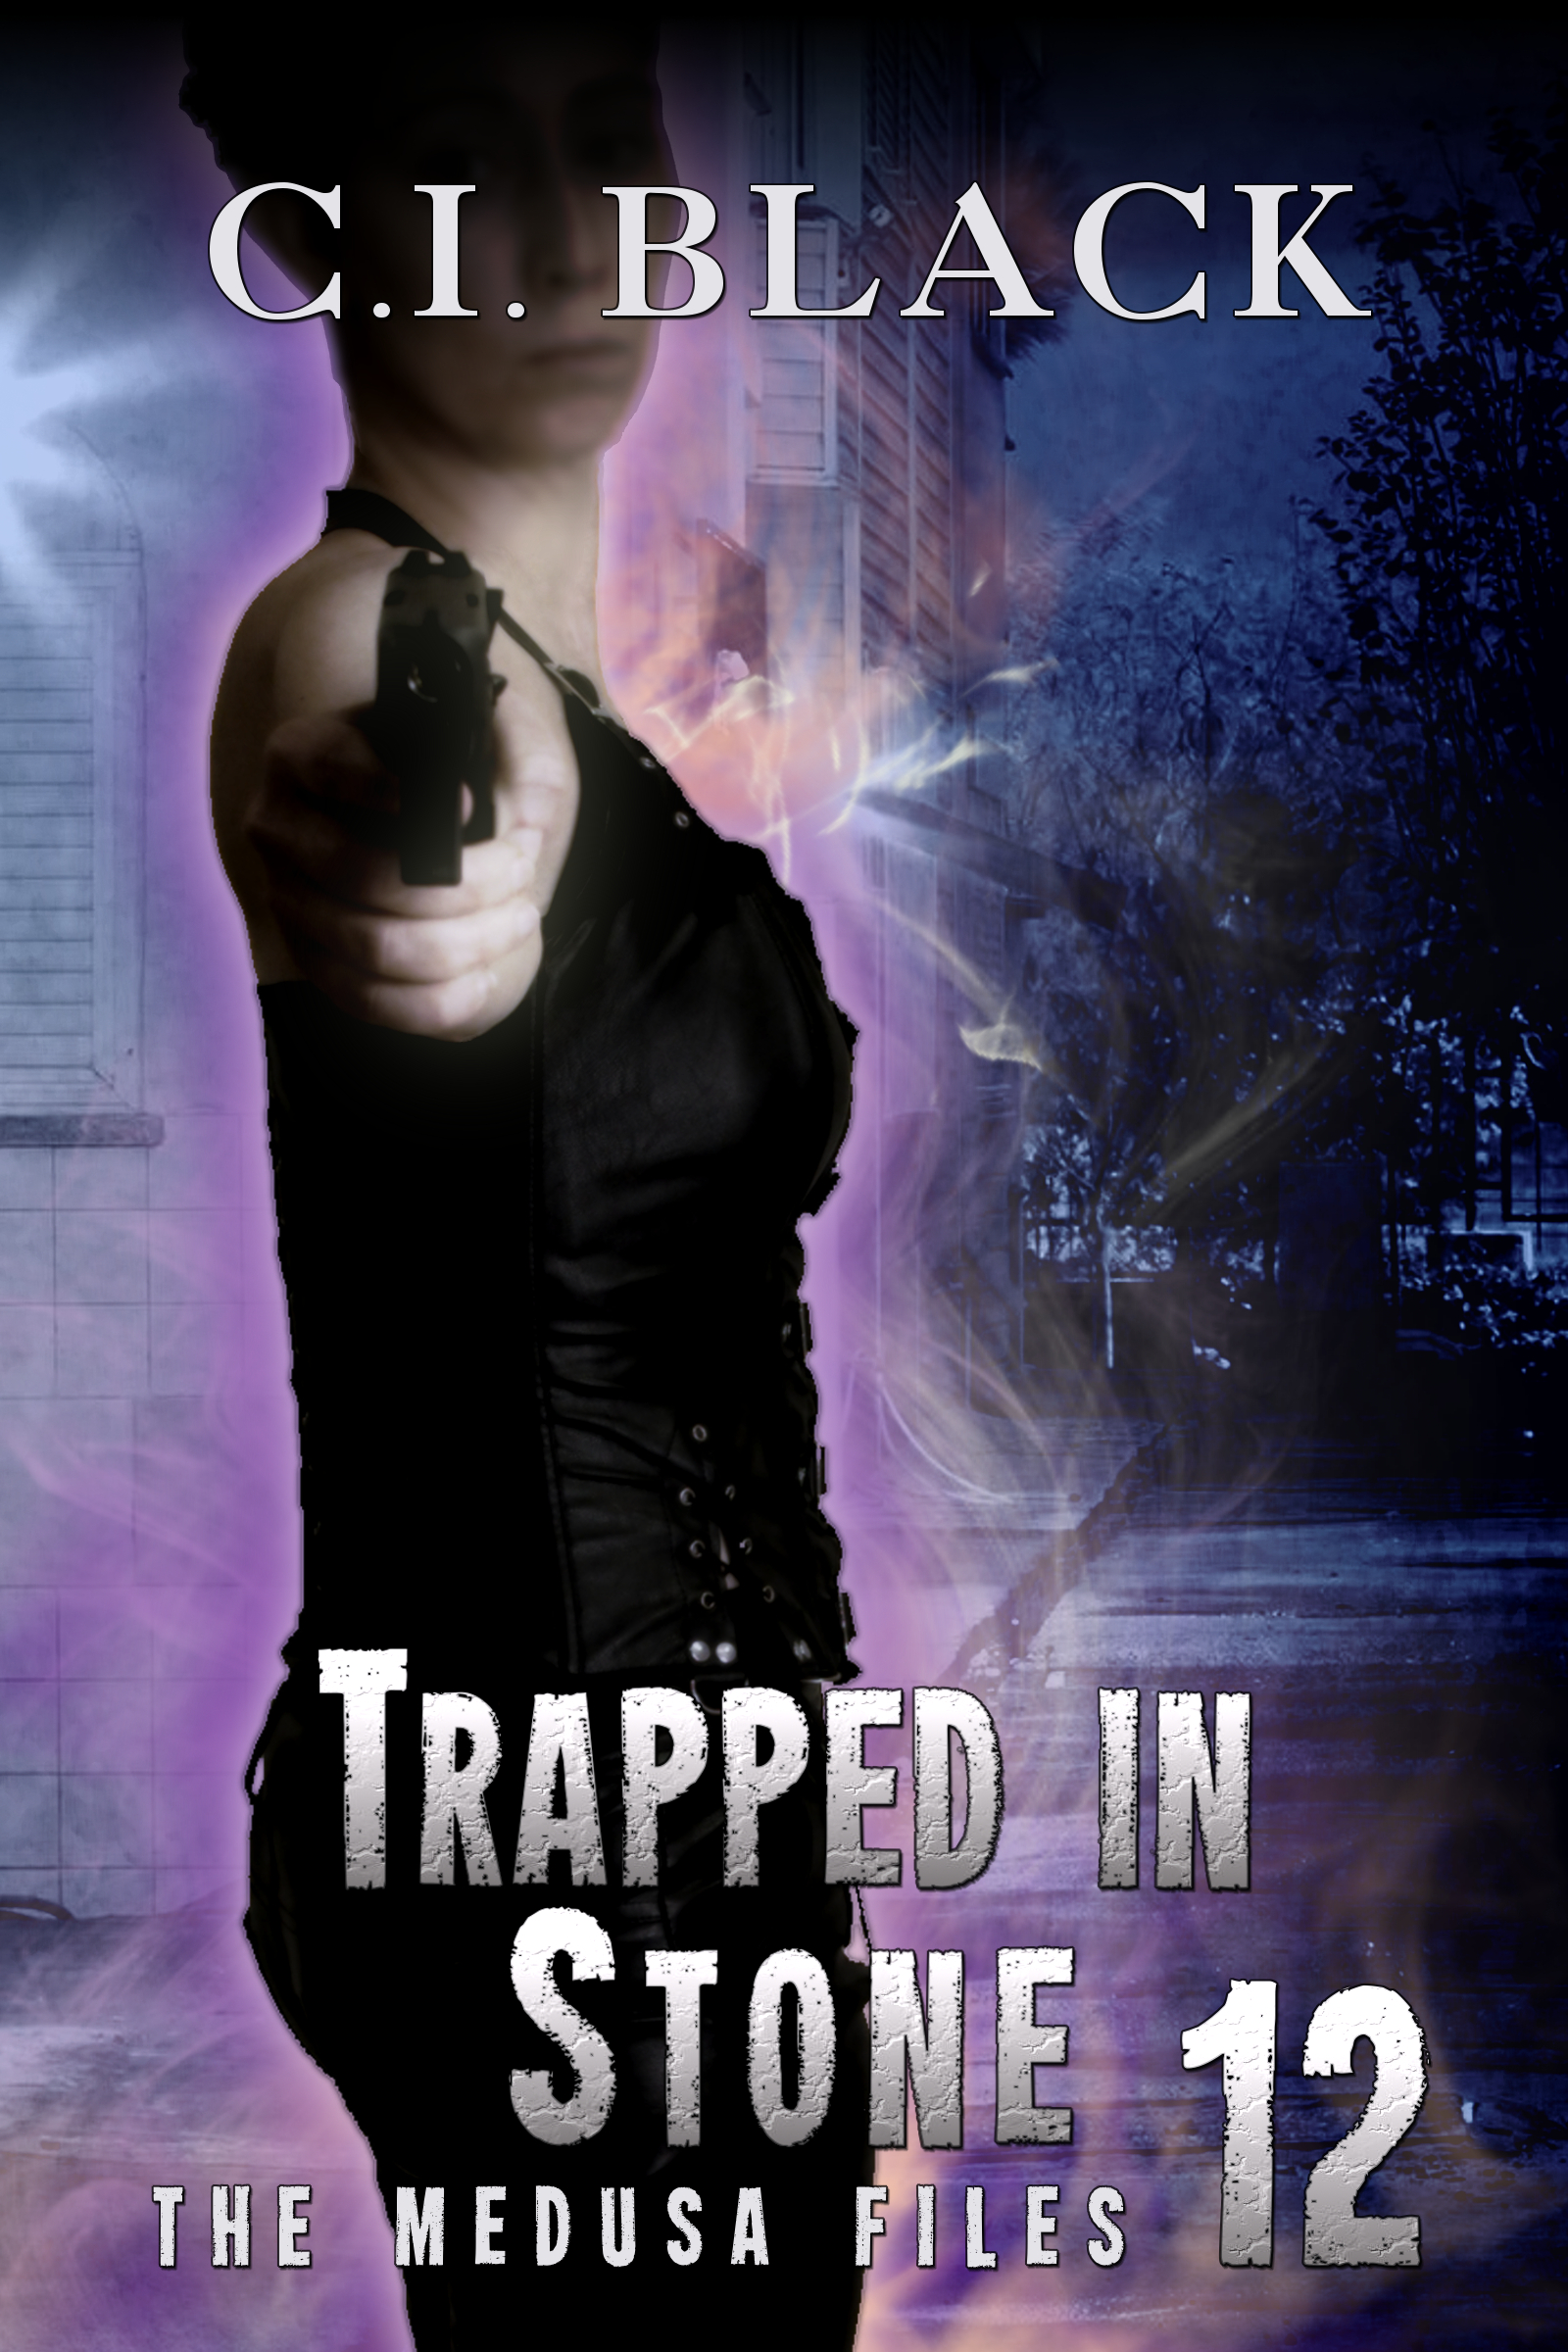 The Medusa Files, case 12: Trapped In Stone, an urban fantasy / paranormal romance and the twelfth and final book in the Medusa Files series by C.I. Black